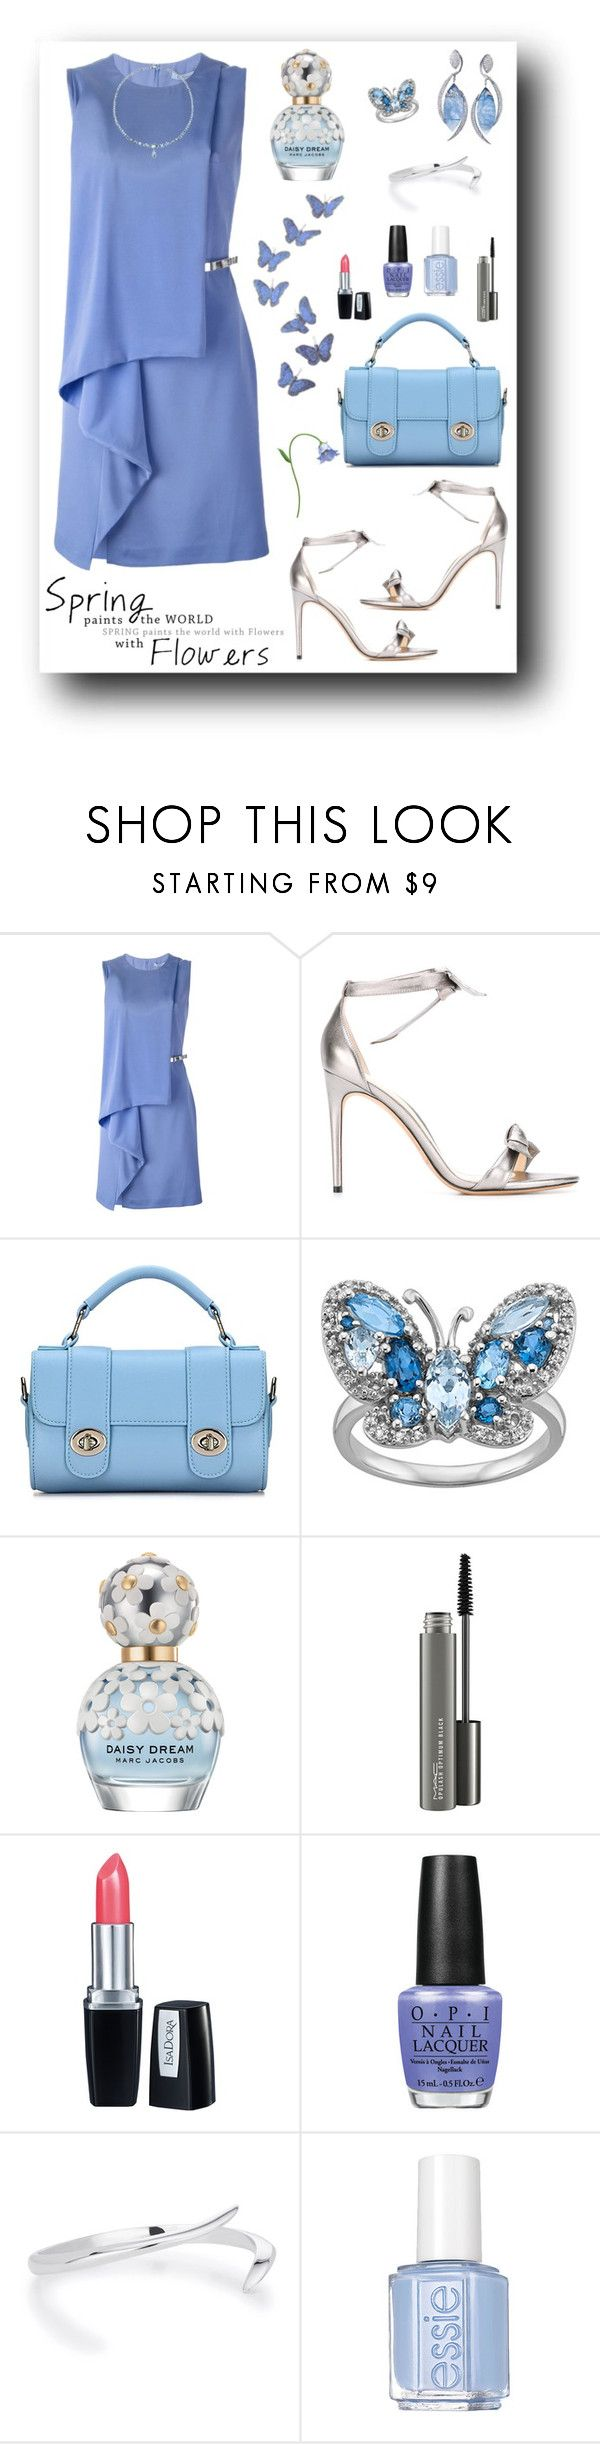 """Blue Spring"" by rboowybe ❤ liked on Polyvore featuring Blumarine, Alexandre Birman, De Beers, Marc Jacobs, MAC Cosmetics, Isadora, OPI, Essie and contestentry"